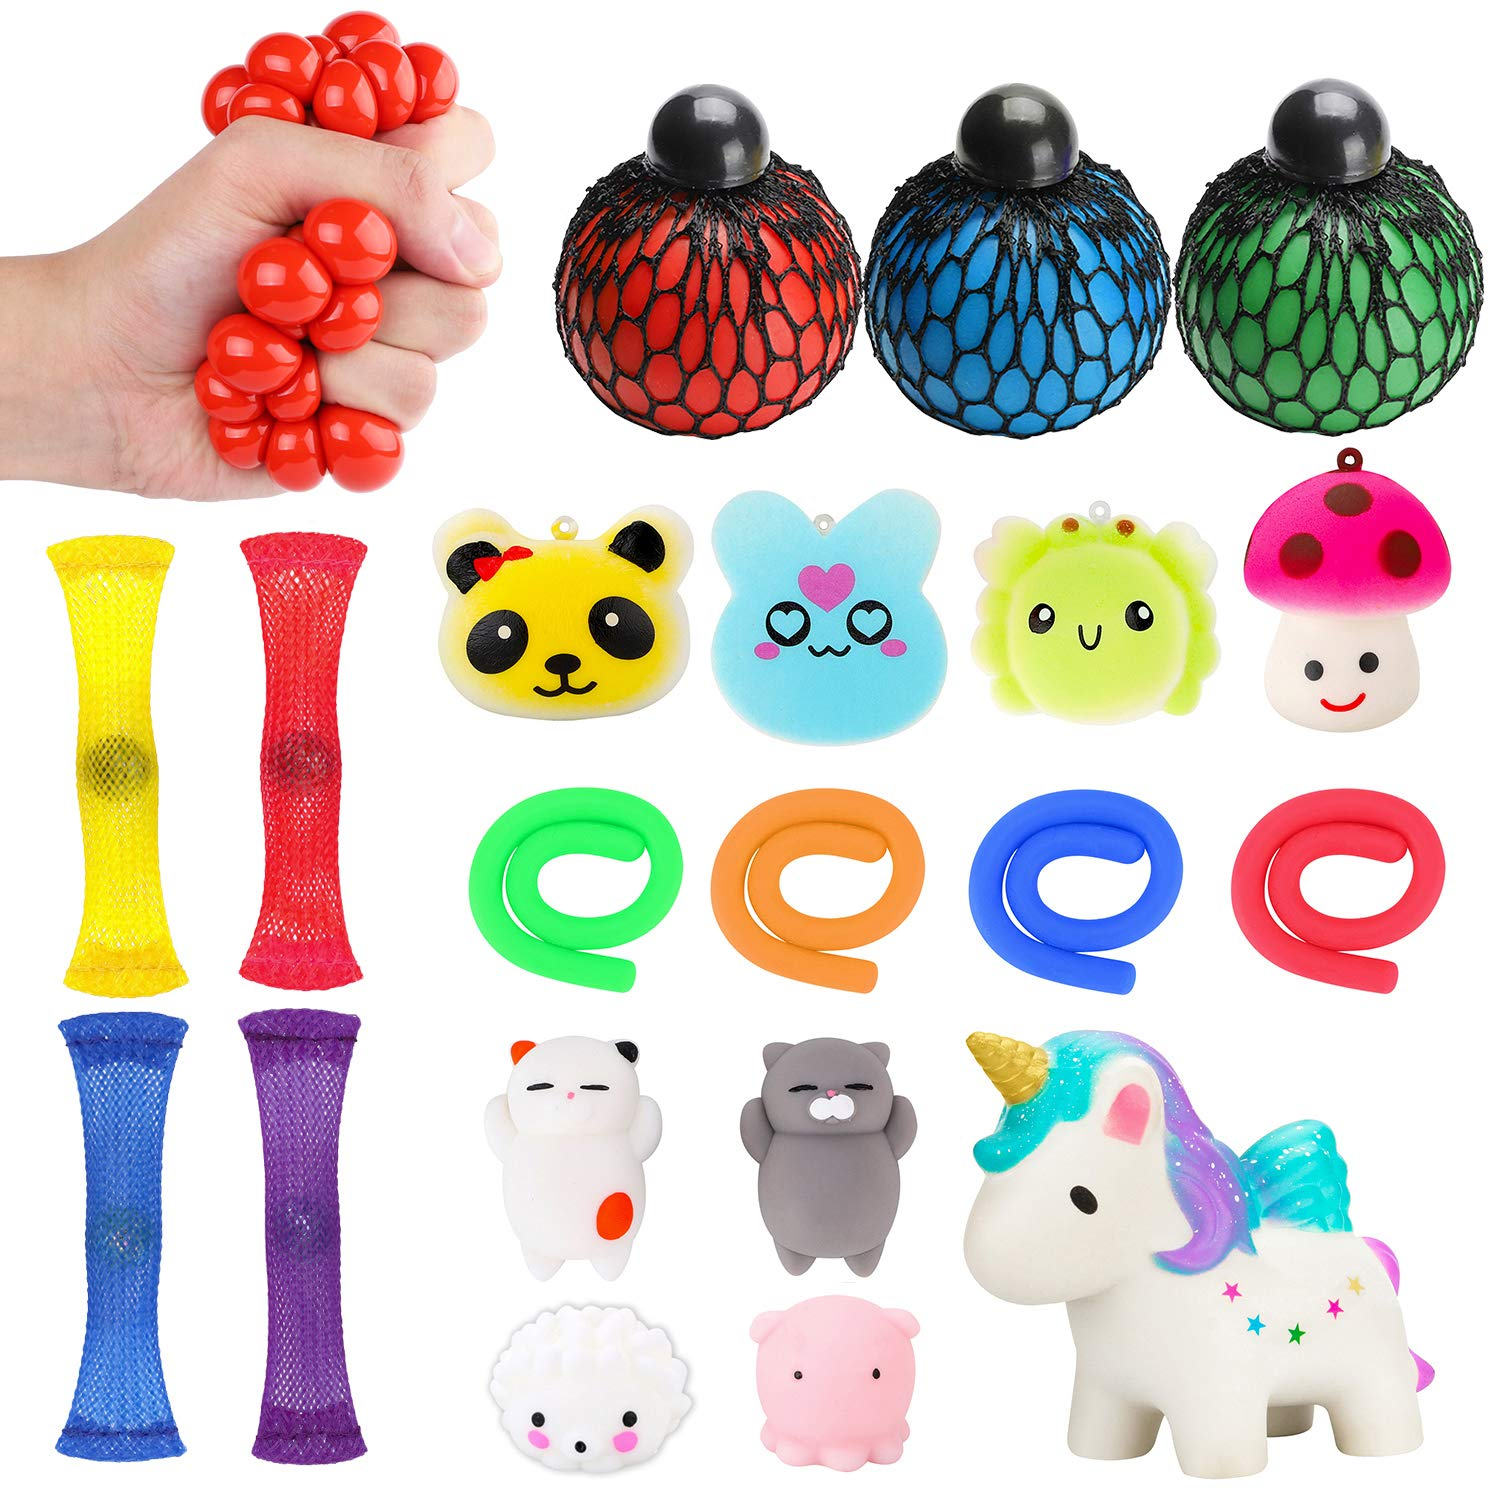 WATINC 20 Pack Sensory Fidget Toys Set, Kawaii Squishy, Mochi Squishies, Squeeze Ball, Mesh and Marble Toy, Stretchy String, Colorful Sensory Fidget Stretch Toy for ADHD Autism Stress Anxiety Relief by WATINC